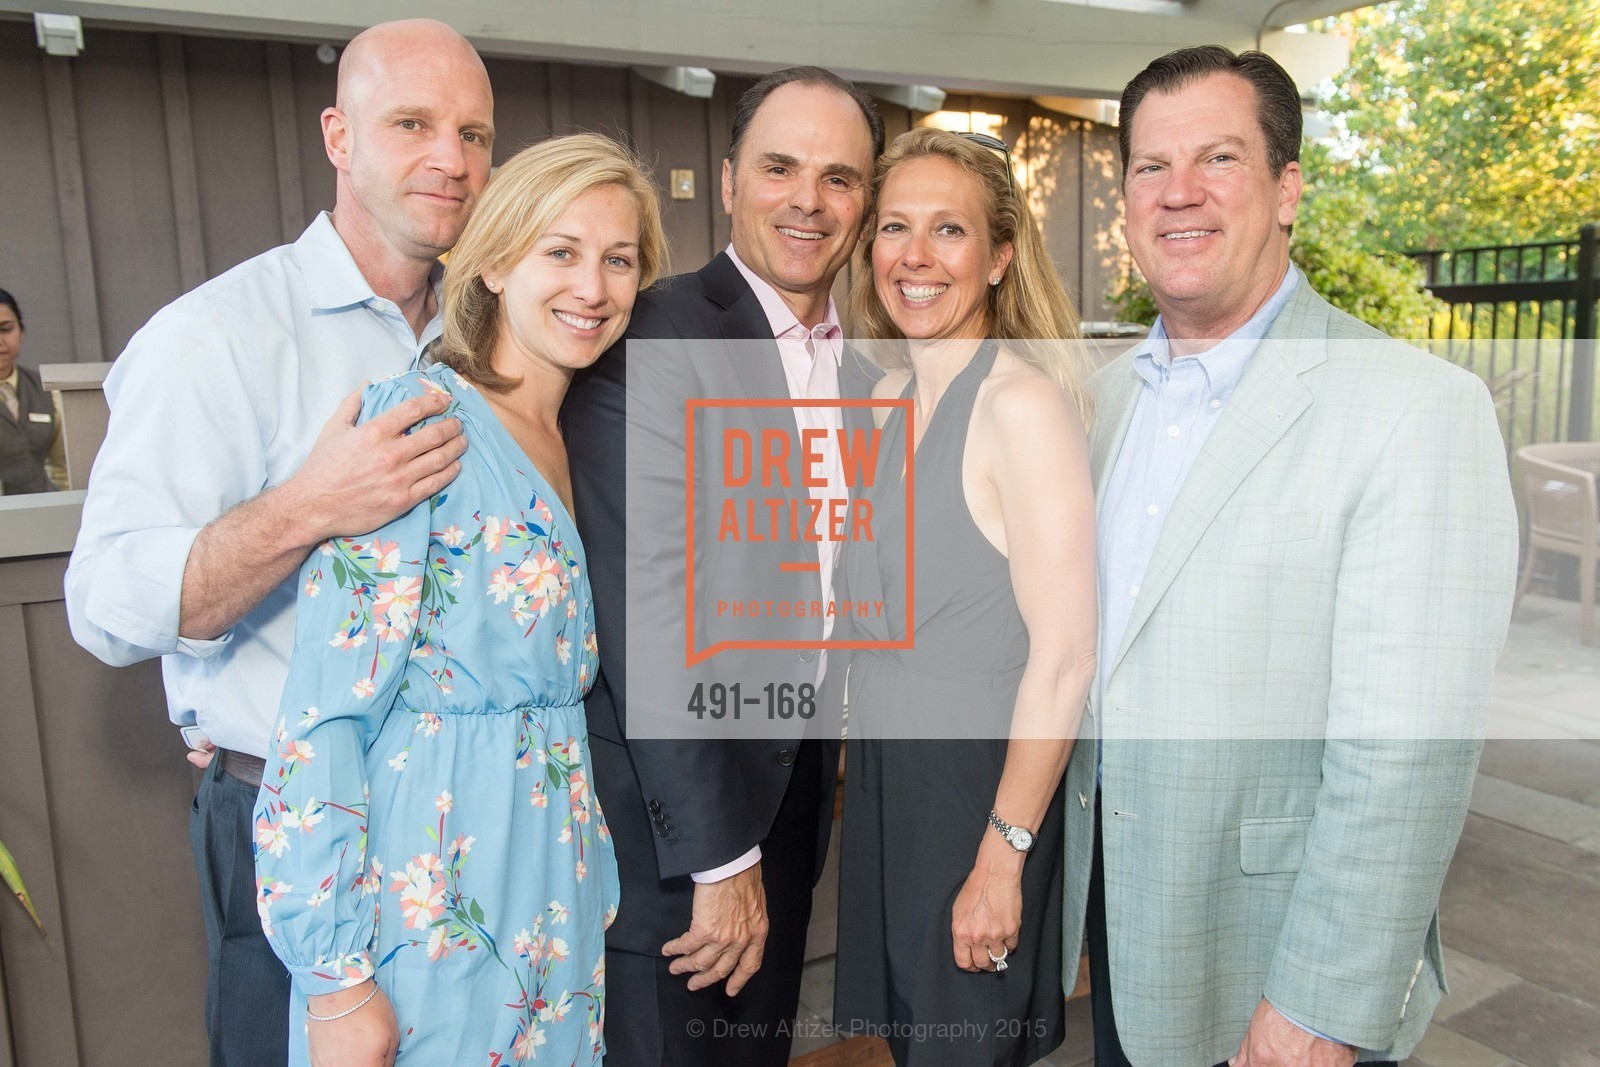 Dean Filpowicz, Kelly Deytoonian, Don DeFranco, Juno Szalay, Paul Stickland, Menlo Charity Horse Show Sponsor Party , Rosewood Resort and Spa. 190 Park Lane, June 15th, 2015,Drew Altizer, Drew Altizer Photography, full-service agency, private events, San Francisco photographer, photographer california